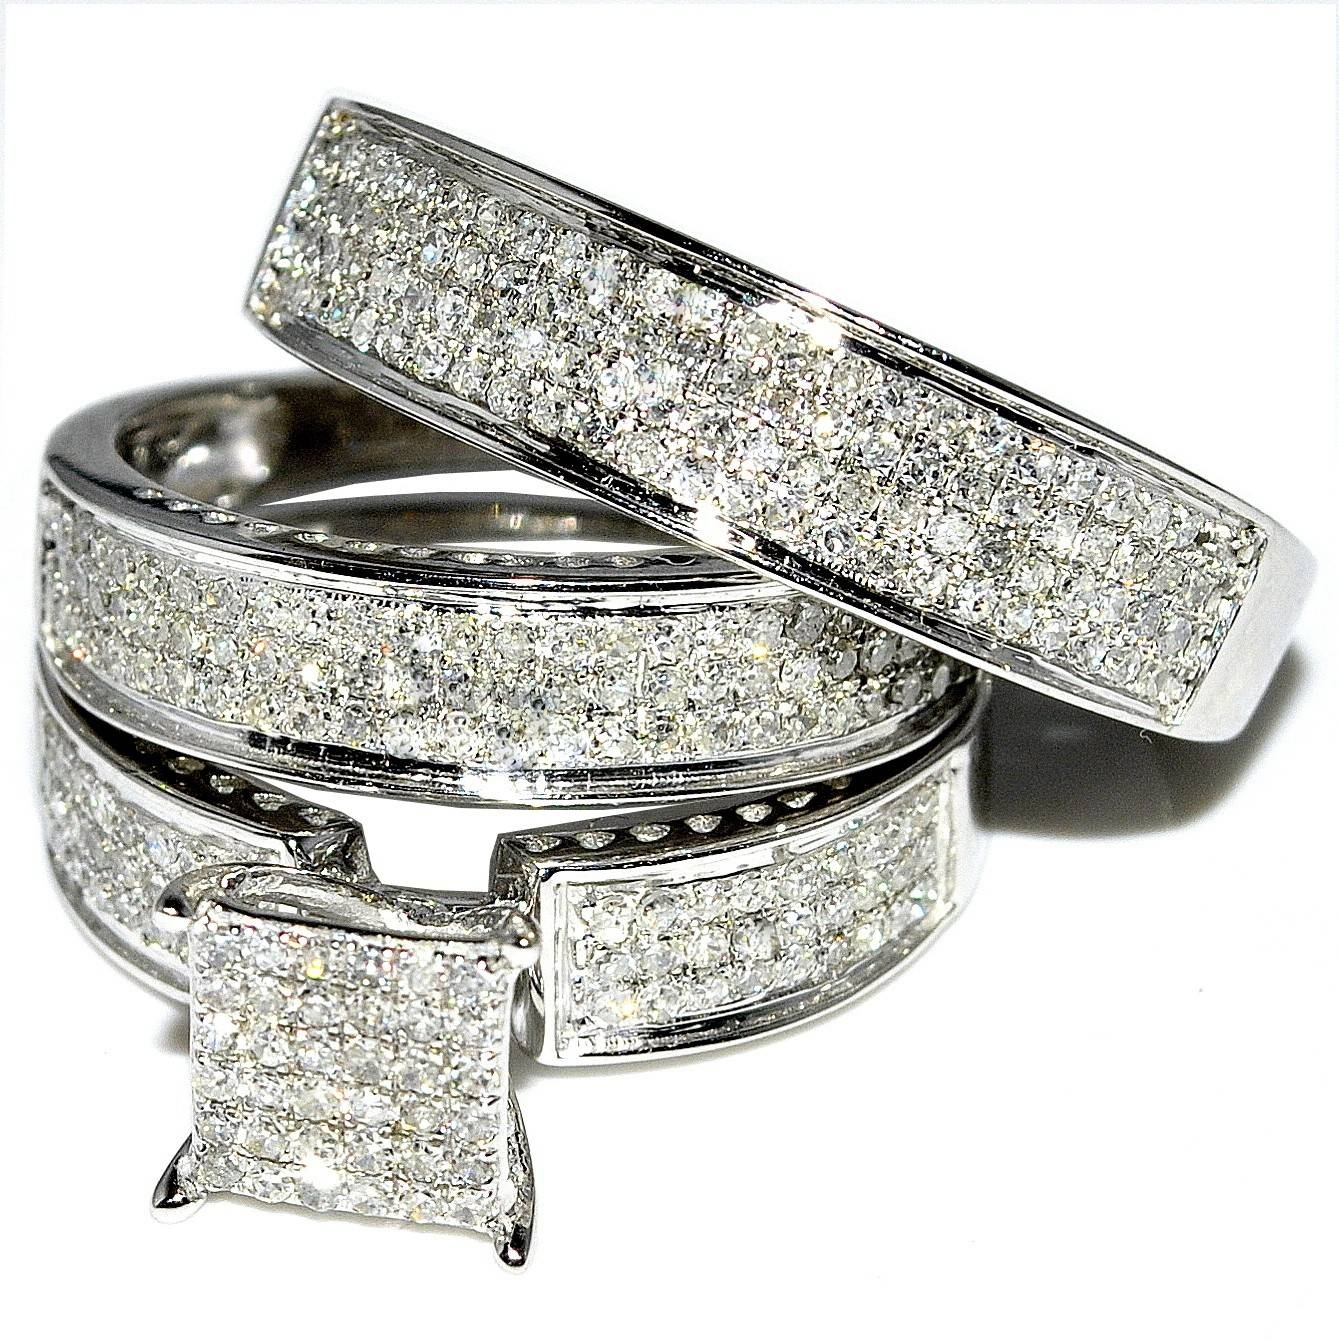 His And Hers Wedding Ring Sets Enchanting His And Hers Wedding With Diamond Wedding Bands Sets His And Hers (View 3 of 15)